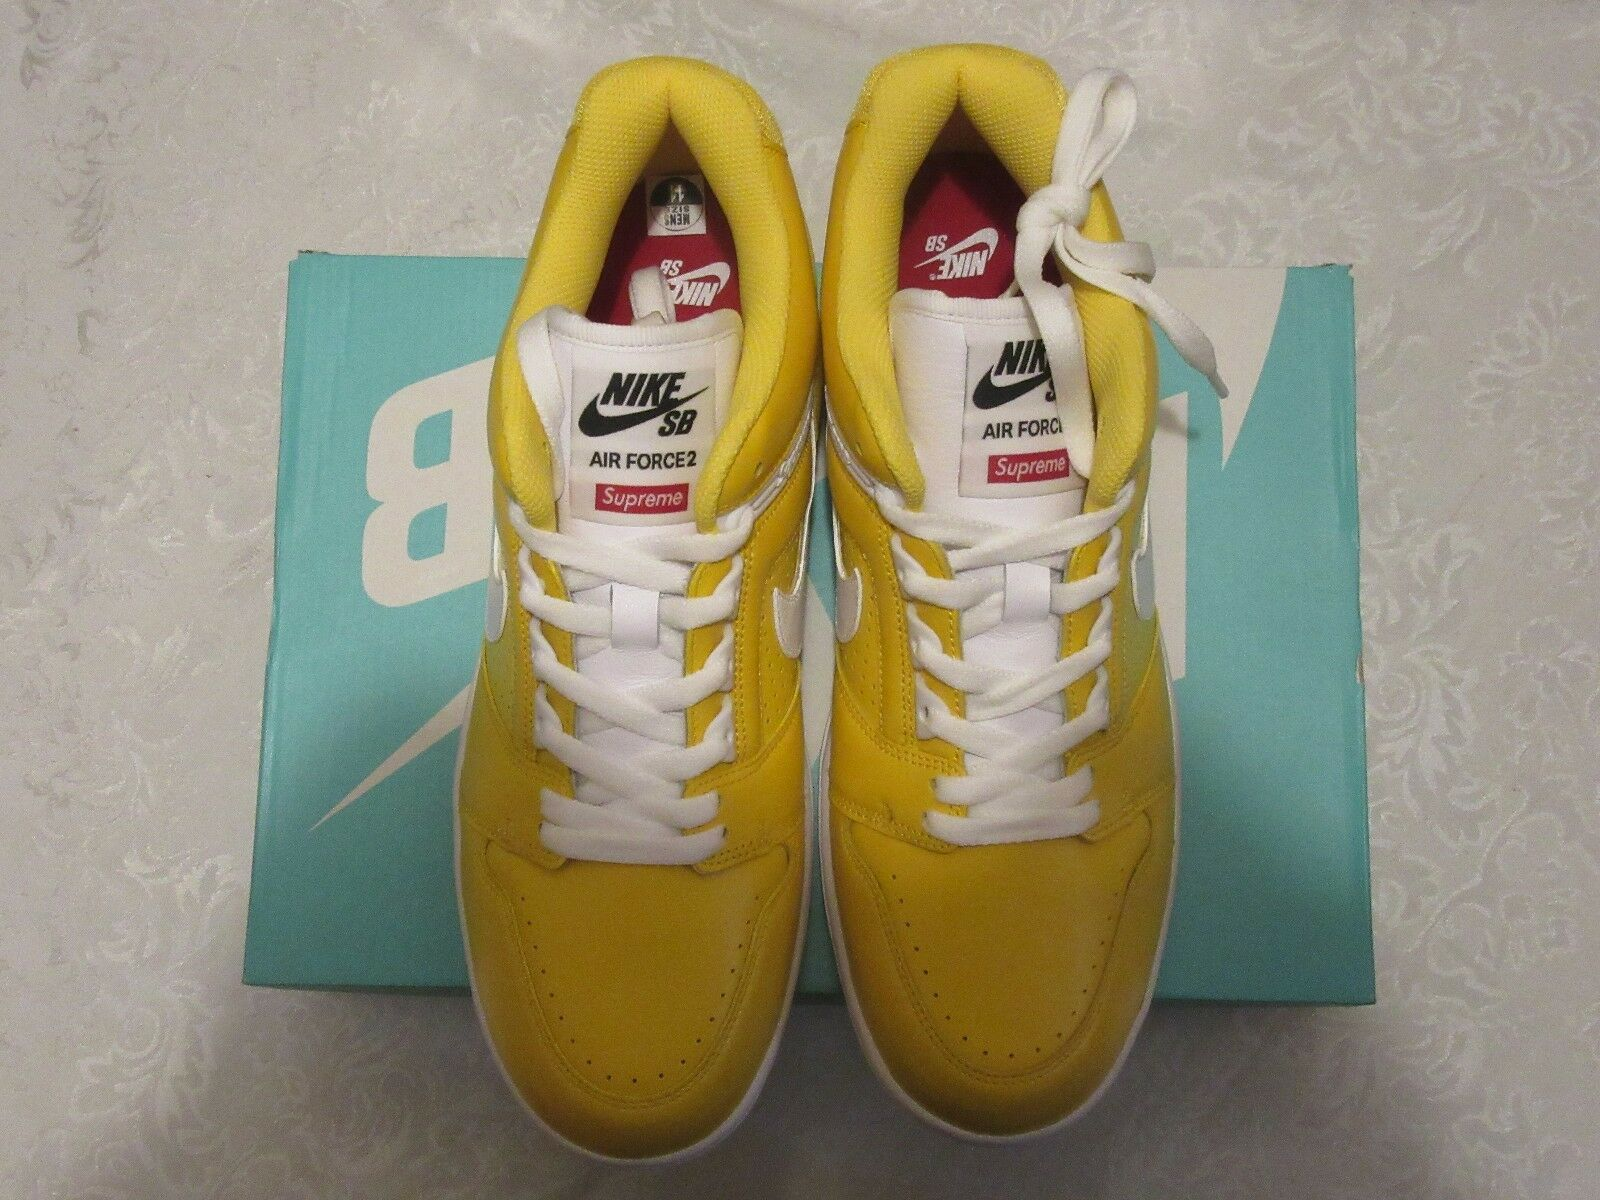 Nike AF2 Supreme SB Low Yellow 2 World Famous Air Force 2 Yellow II AA0871 717 Size 11 73e1cc